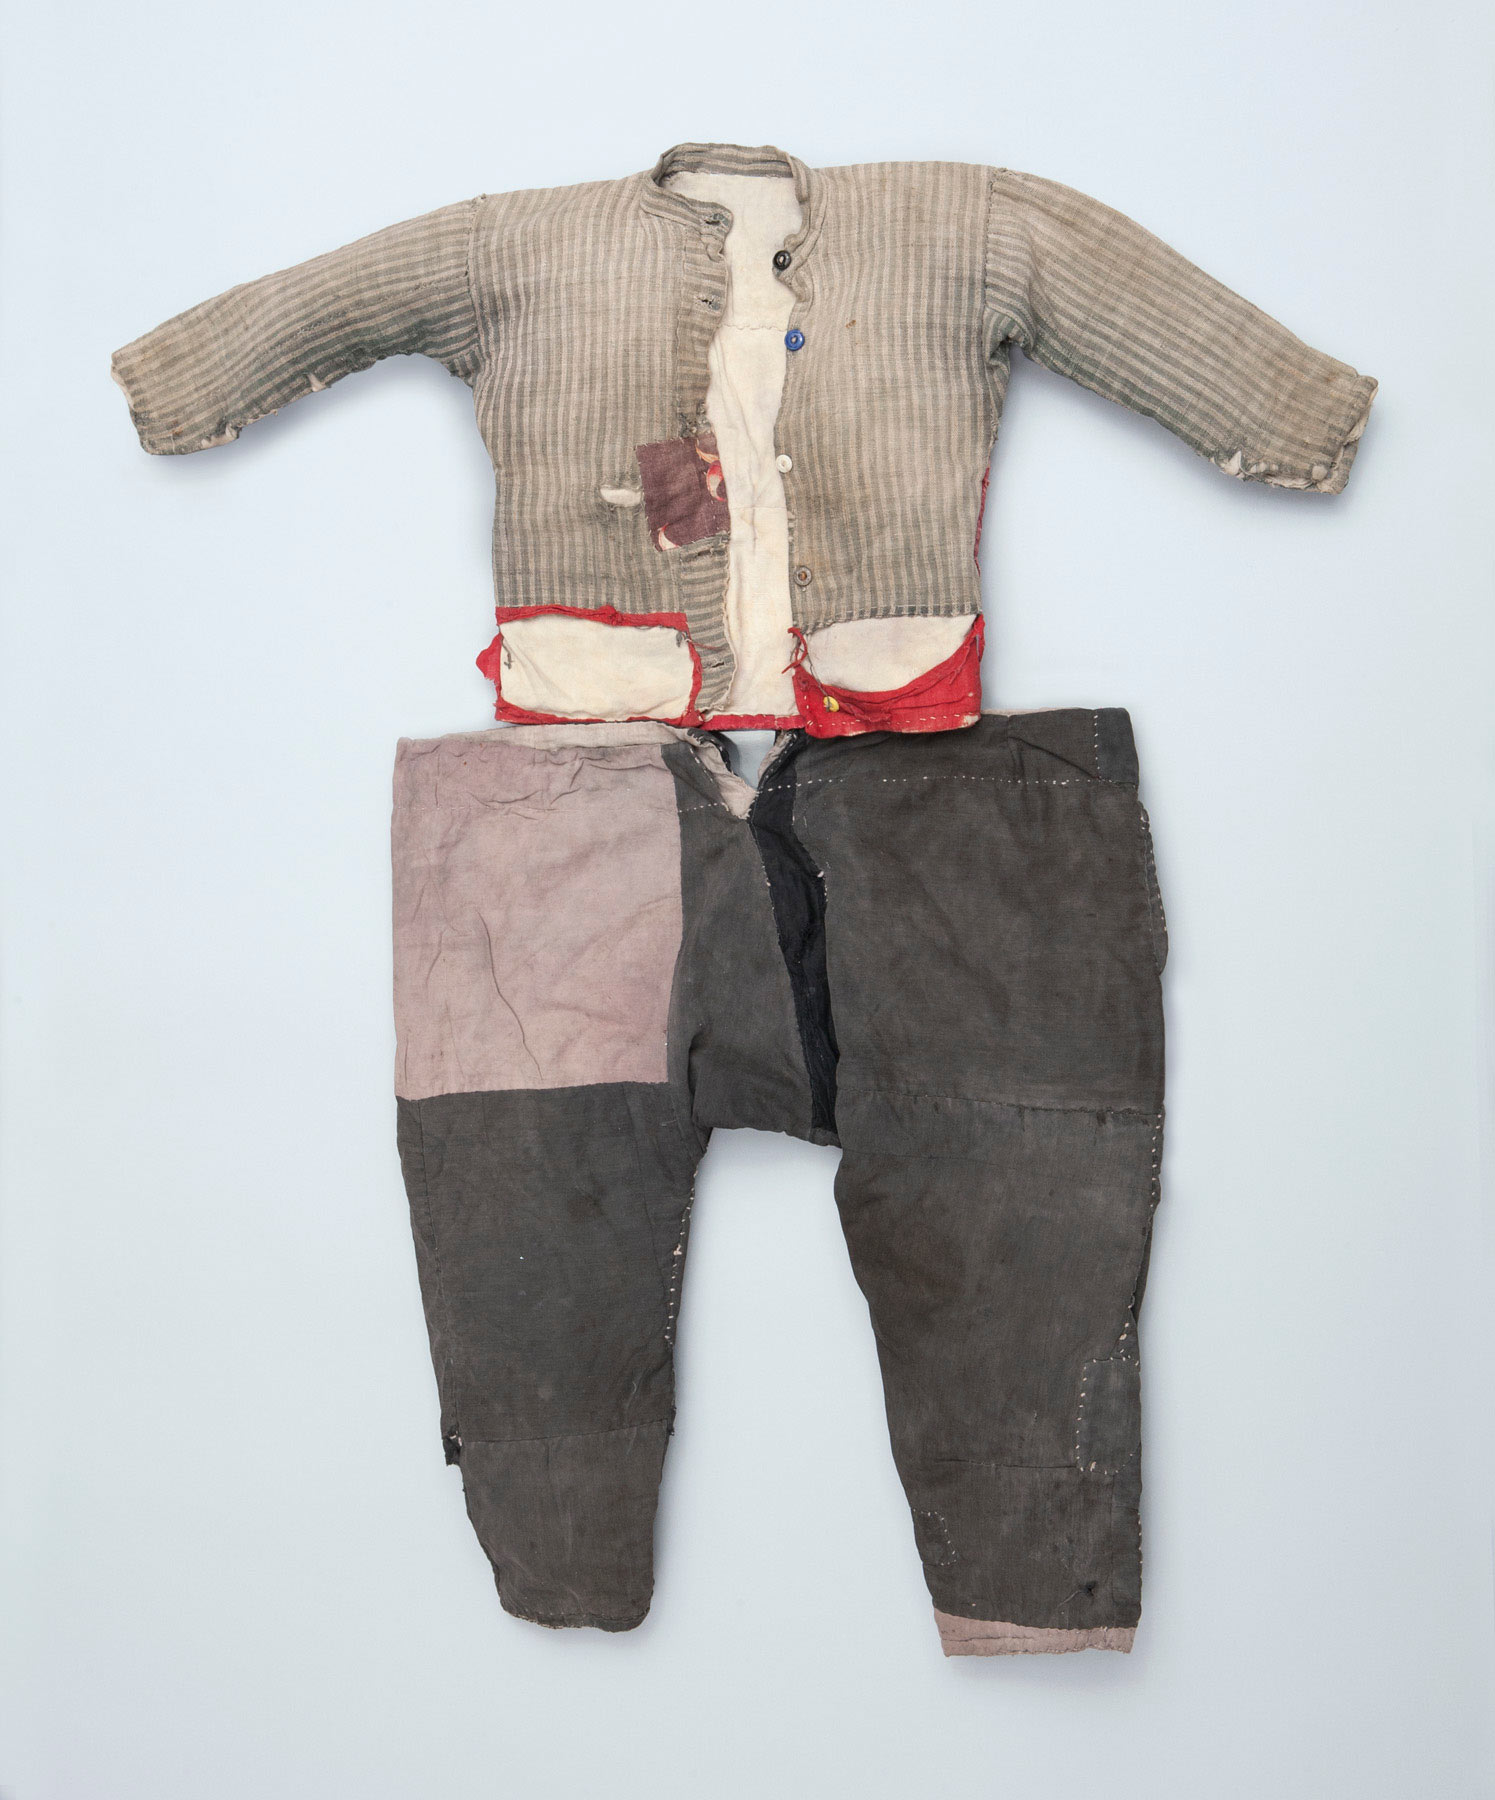 "Armenian Boy's Costume. These pants, shirt, and shoes were recovered from the body of a deceased Armenian child found in the Syrian desert by American missionary Helen Gutterson while searching for survivors. Upon presenting these to the Armenian Museum in 1973, she urged ""keep these for future generations, lest people forget."""